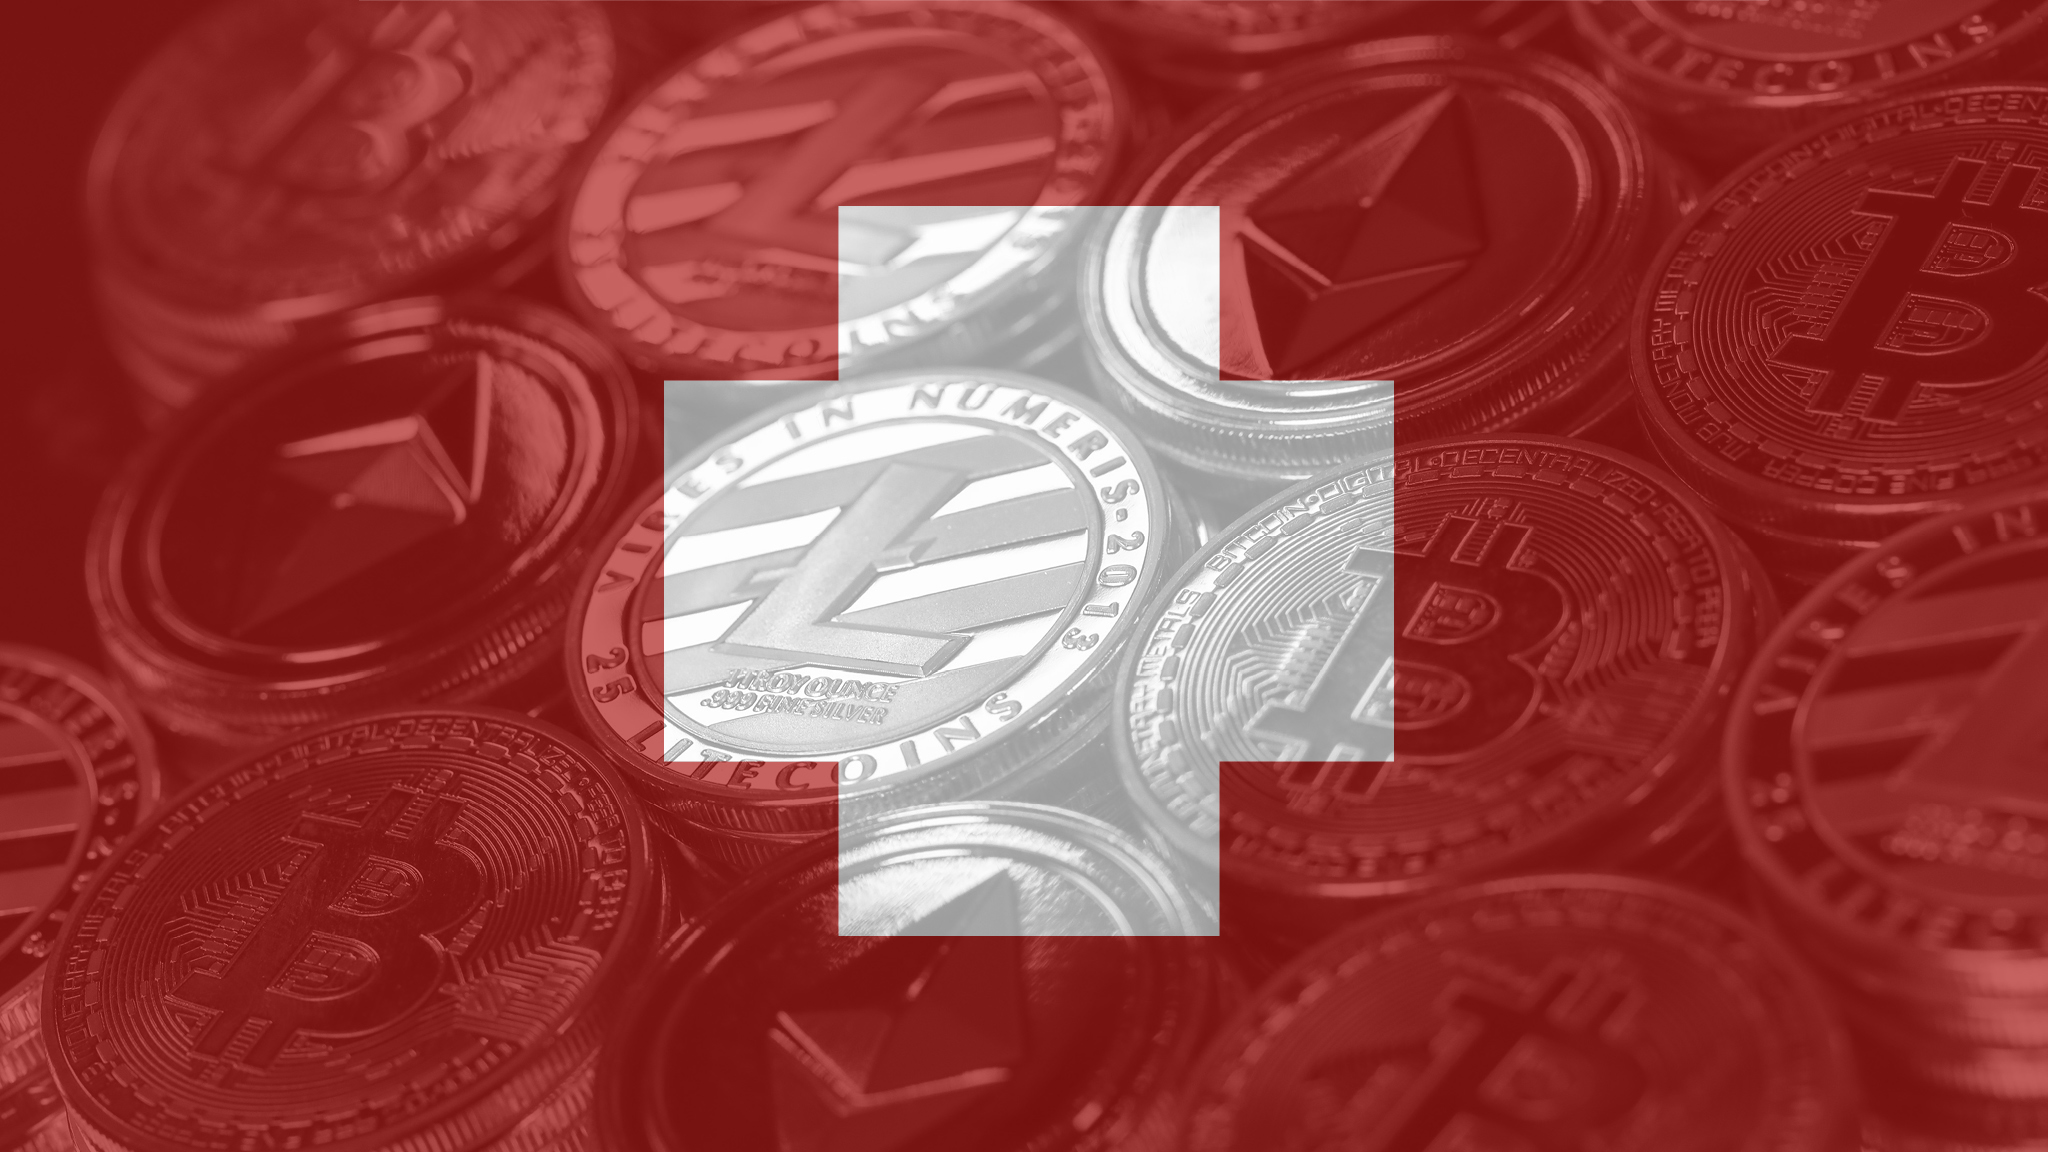 Switzerland embraces cryptocurrency culture